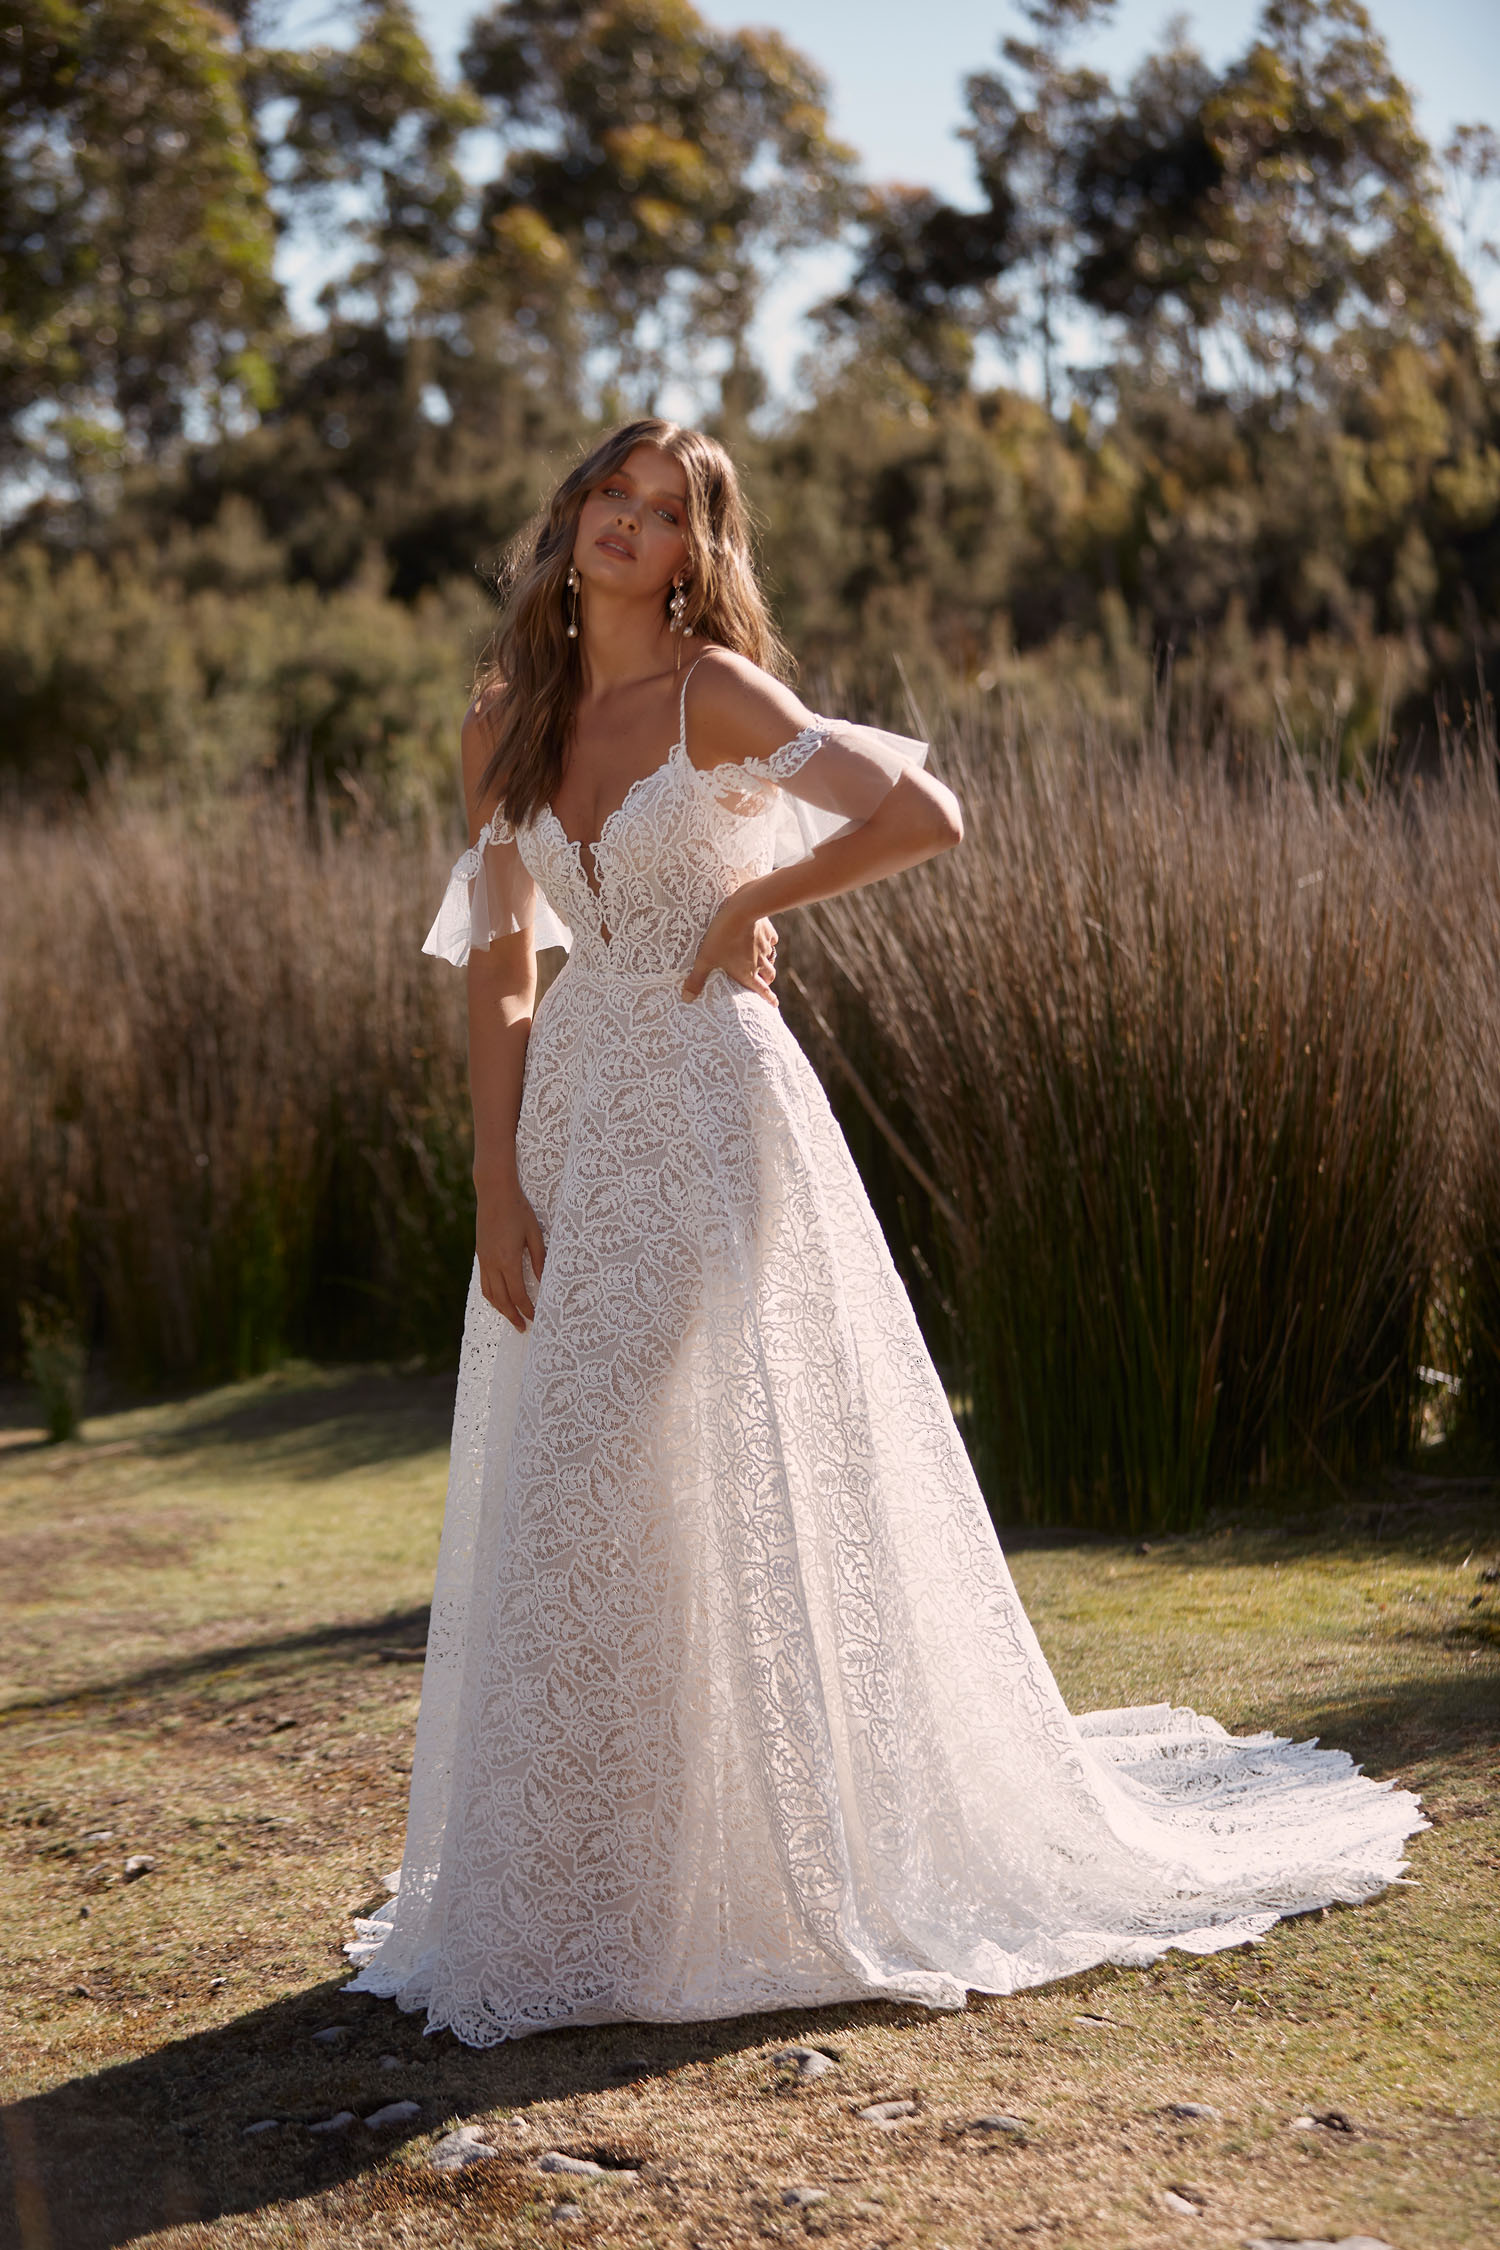 CAMRYN-ML20030-FULL-LENGTH-A-LINE-EMBROIDERED-LACE-GOWN-PLUNGING-NECKLINE-THIN-STRAPS-DETACHABLE-MATCHING-STRAPS-INCLUDED-ZIPPER-CLOSURE-WEDDING-DRESS-MADI-LANE-BRIDAL-1